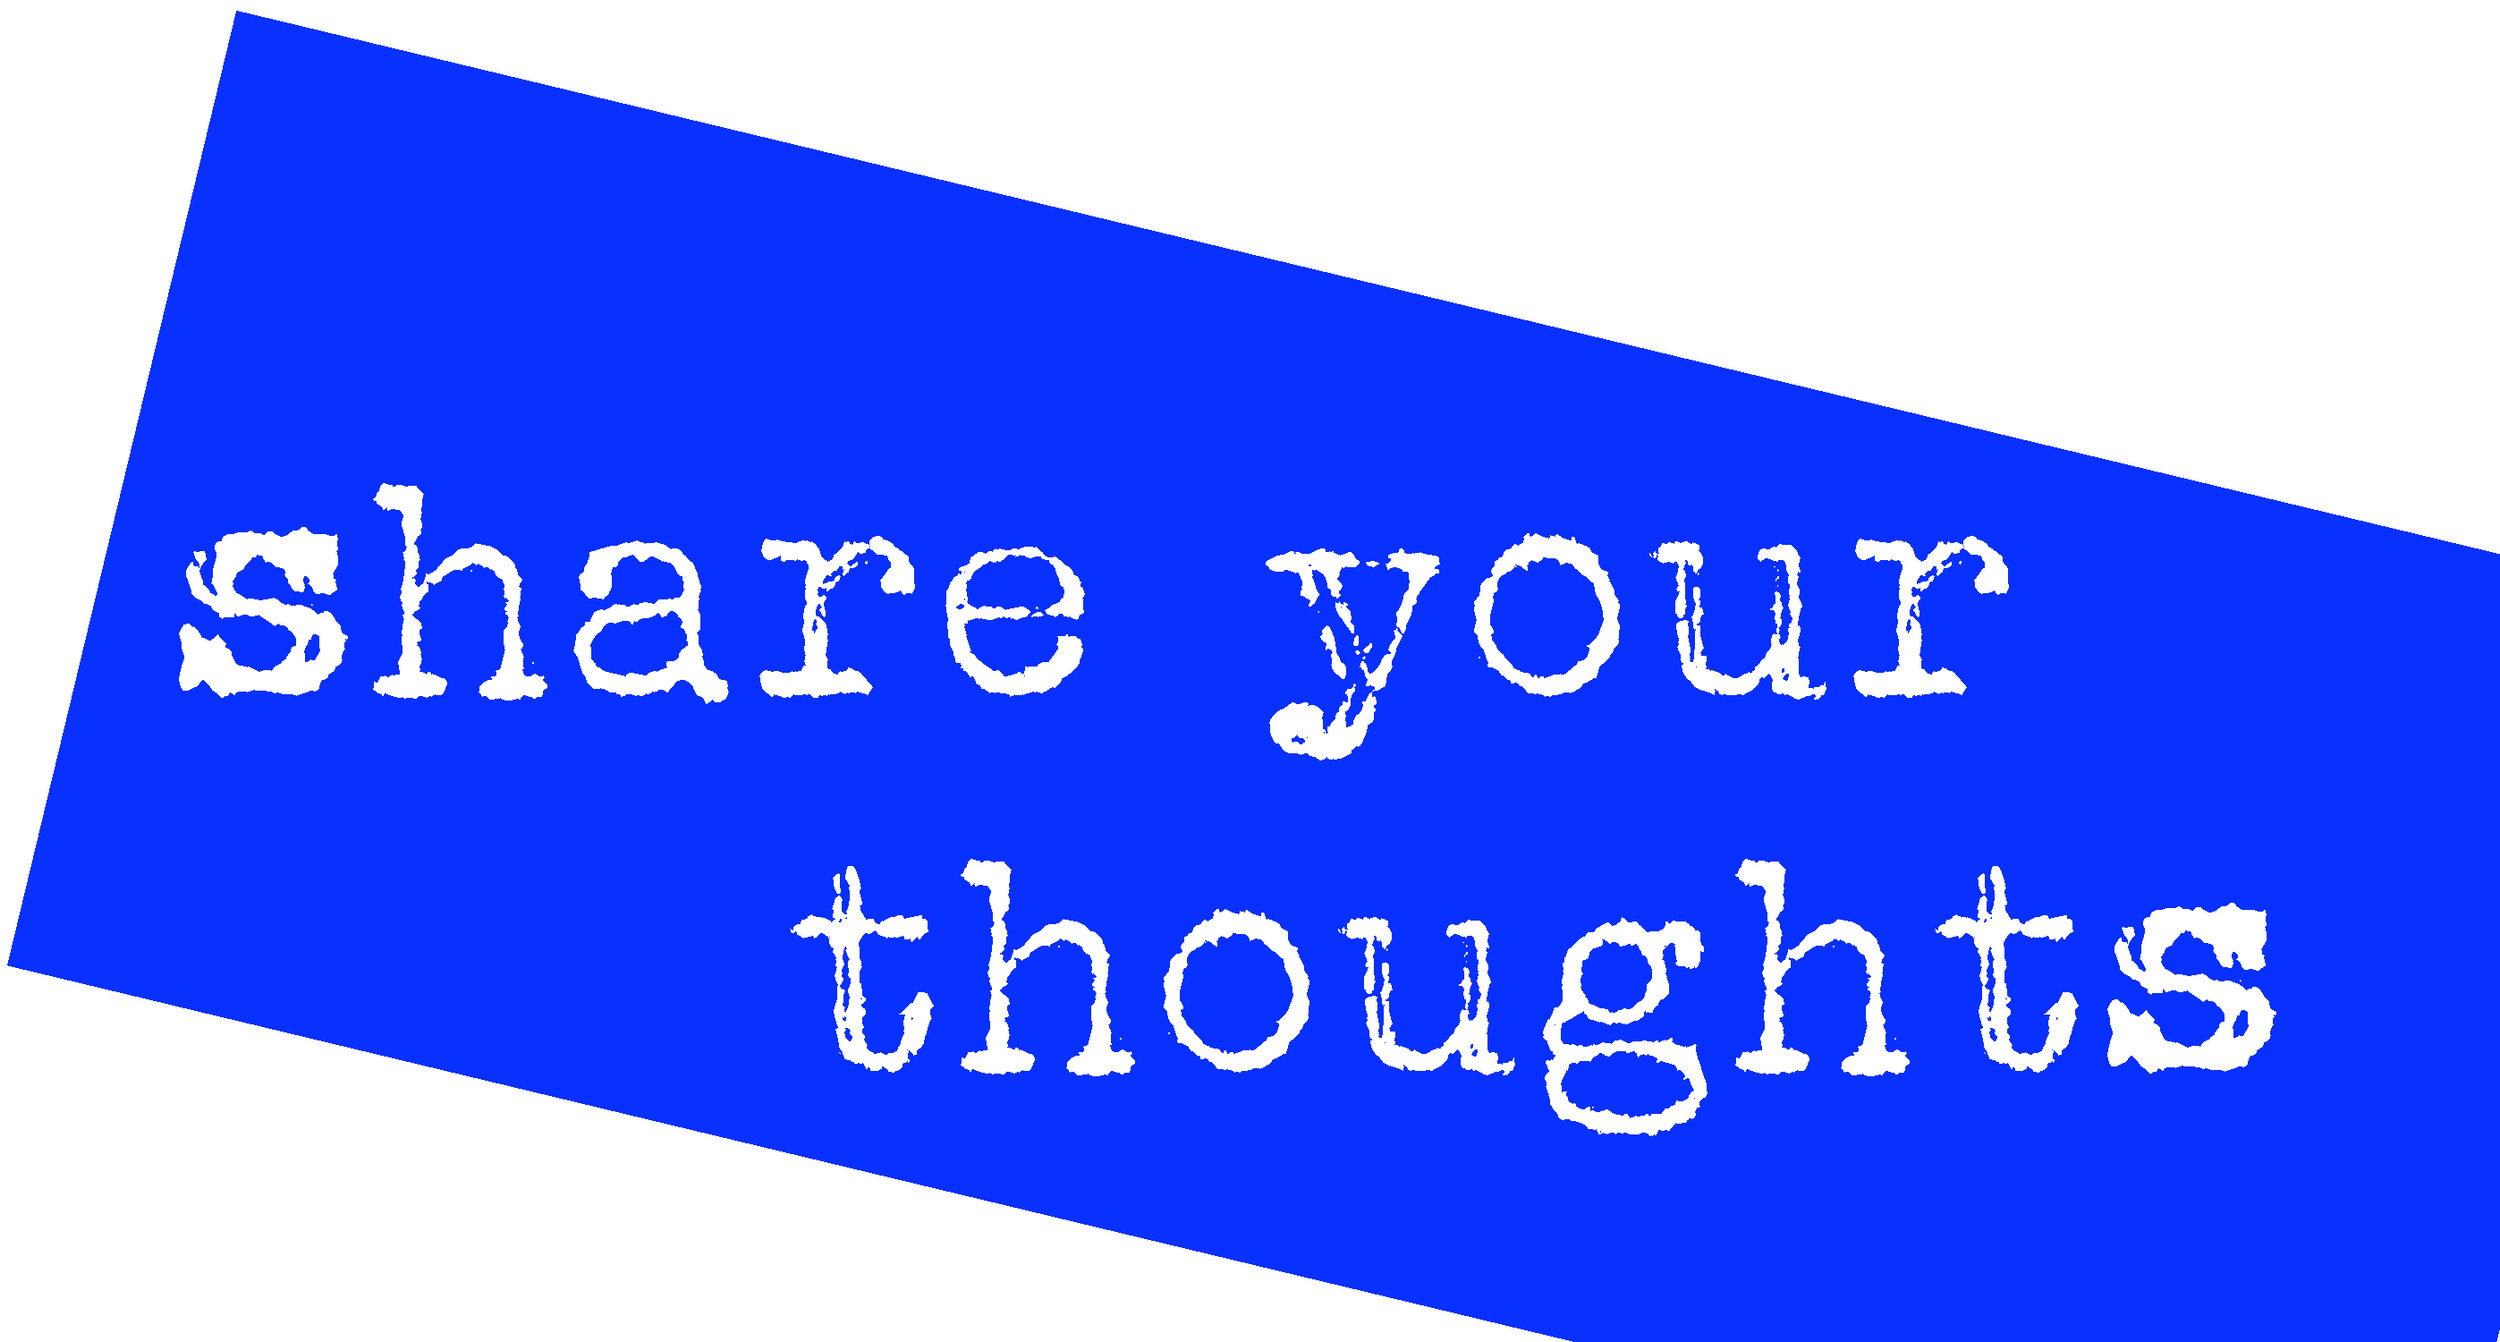 share your thoughts-01.jpg